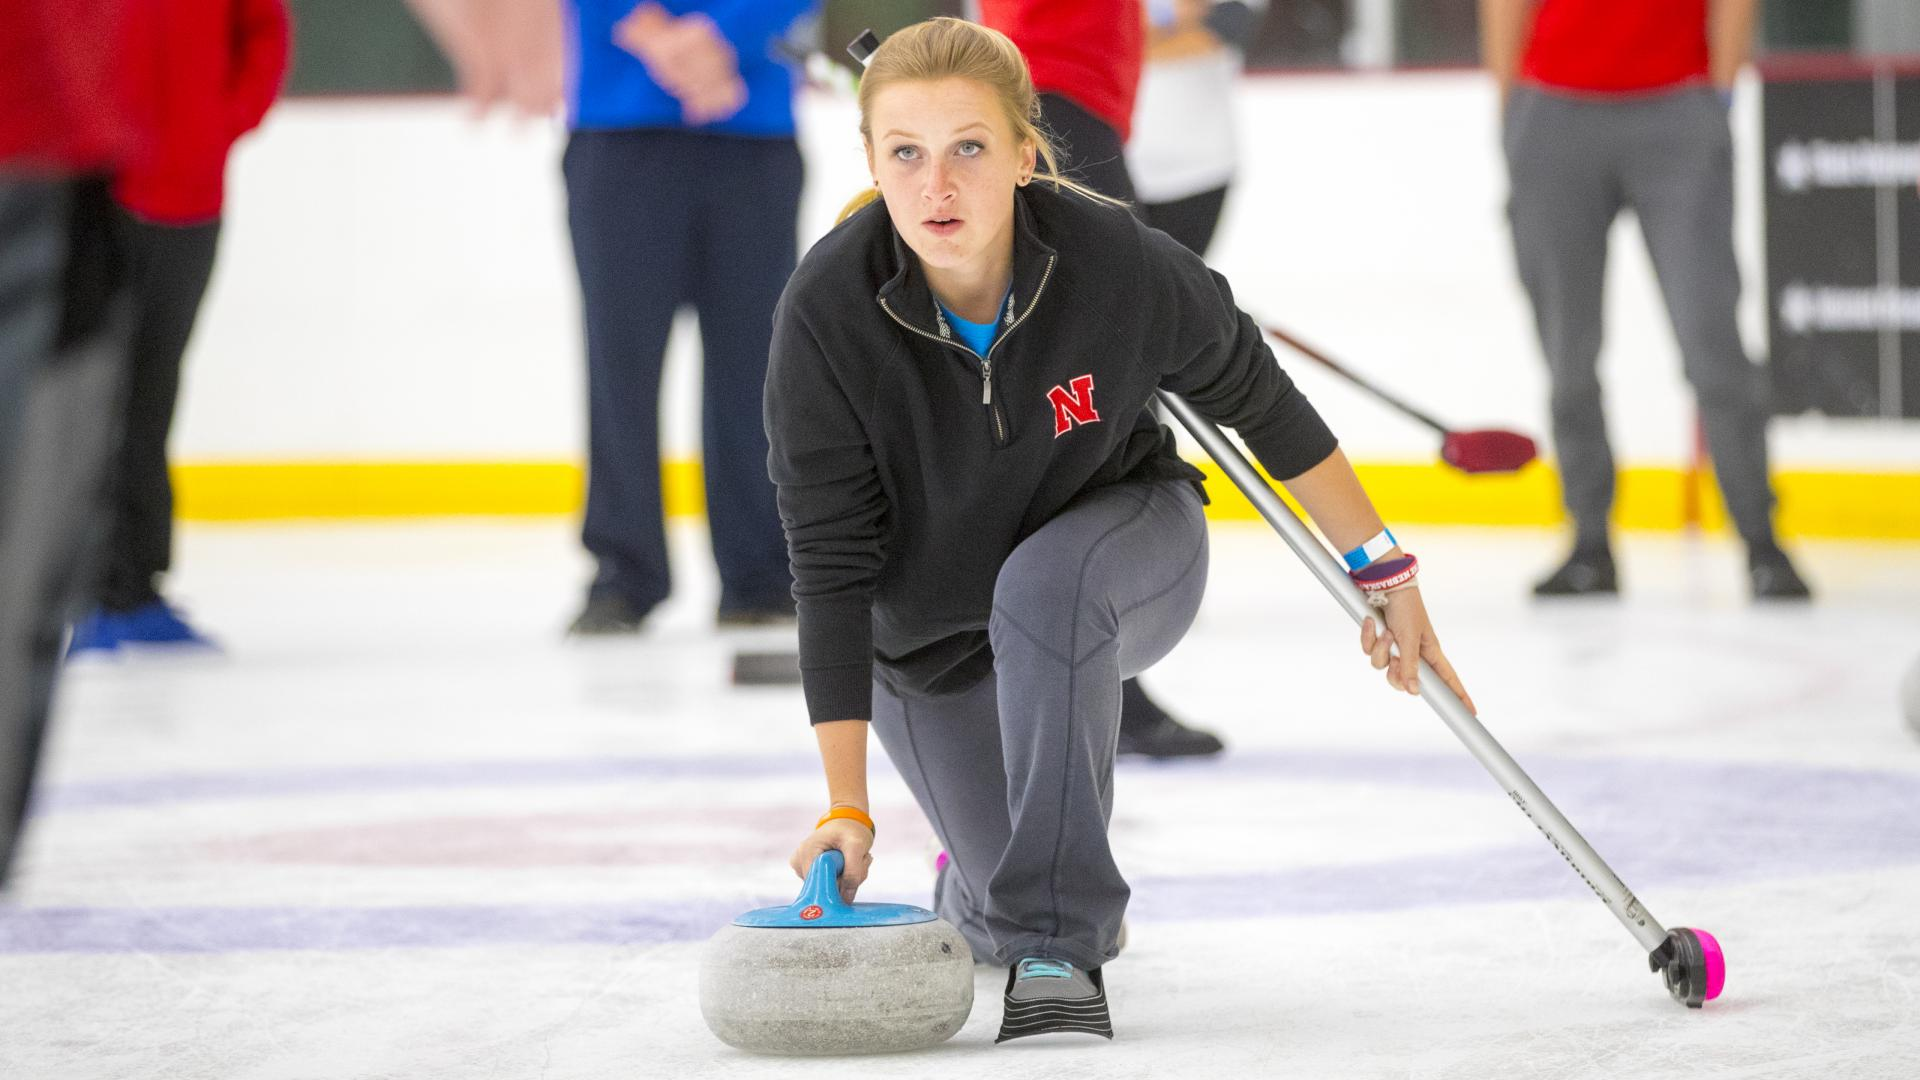 A member of the Nebraska Curling Club practices at the Breslow Ice Center.